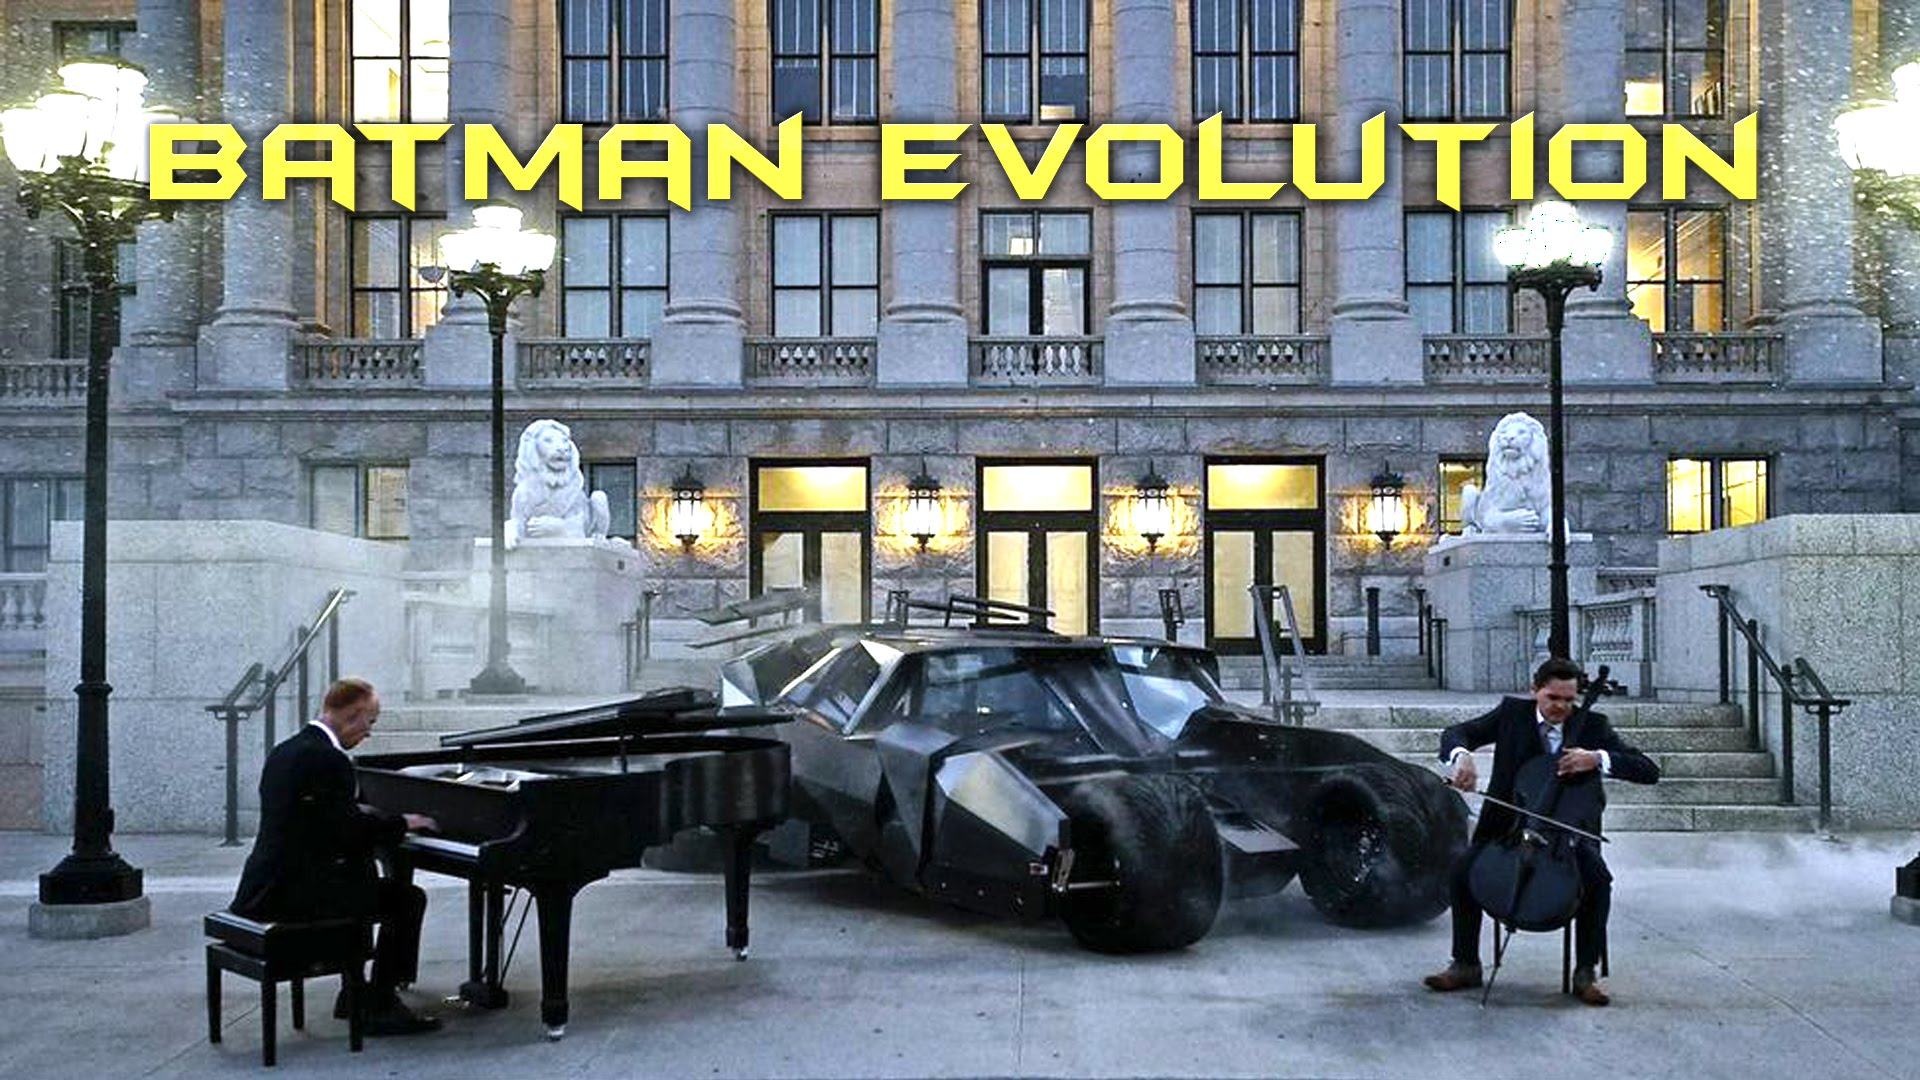 Video of the Day: The Piano Guys' 'Batman Evolution'